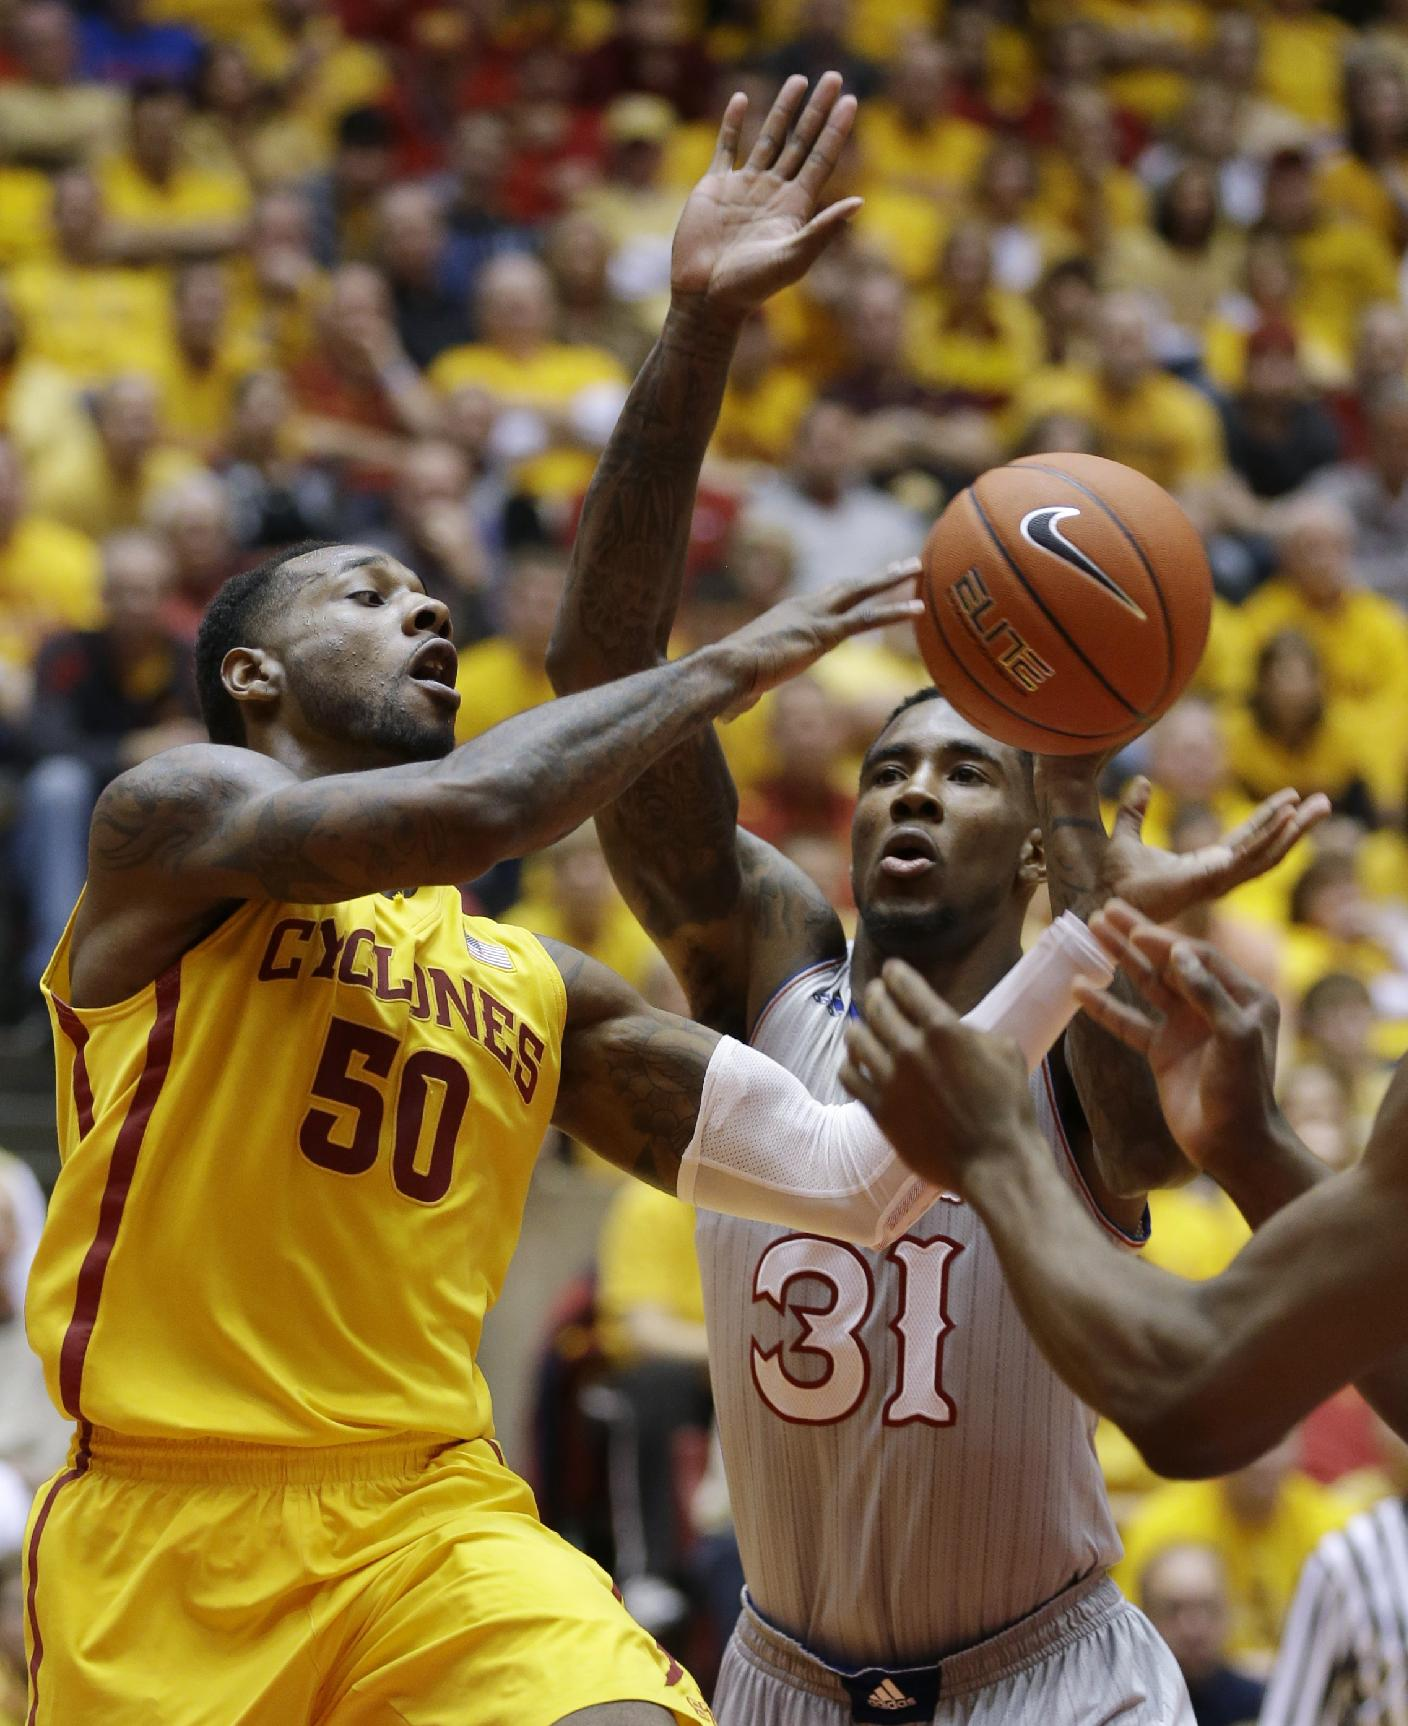 Iowa State guard DeAndre Kane (50) fights for a rebound with Kansas forward Jamari Traylor (31) during the first half of an NCAA college basketball game, Monday, Jan. 13, 2014, in Ames, Iowa